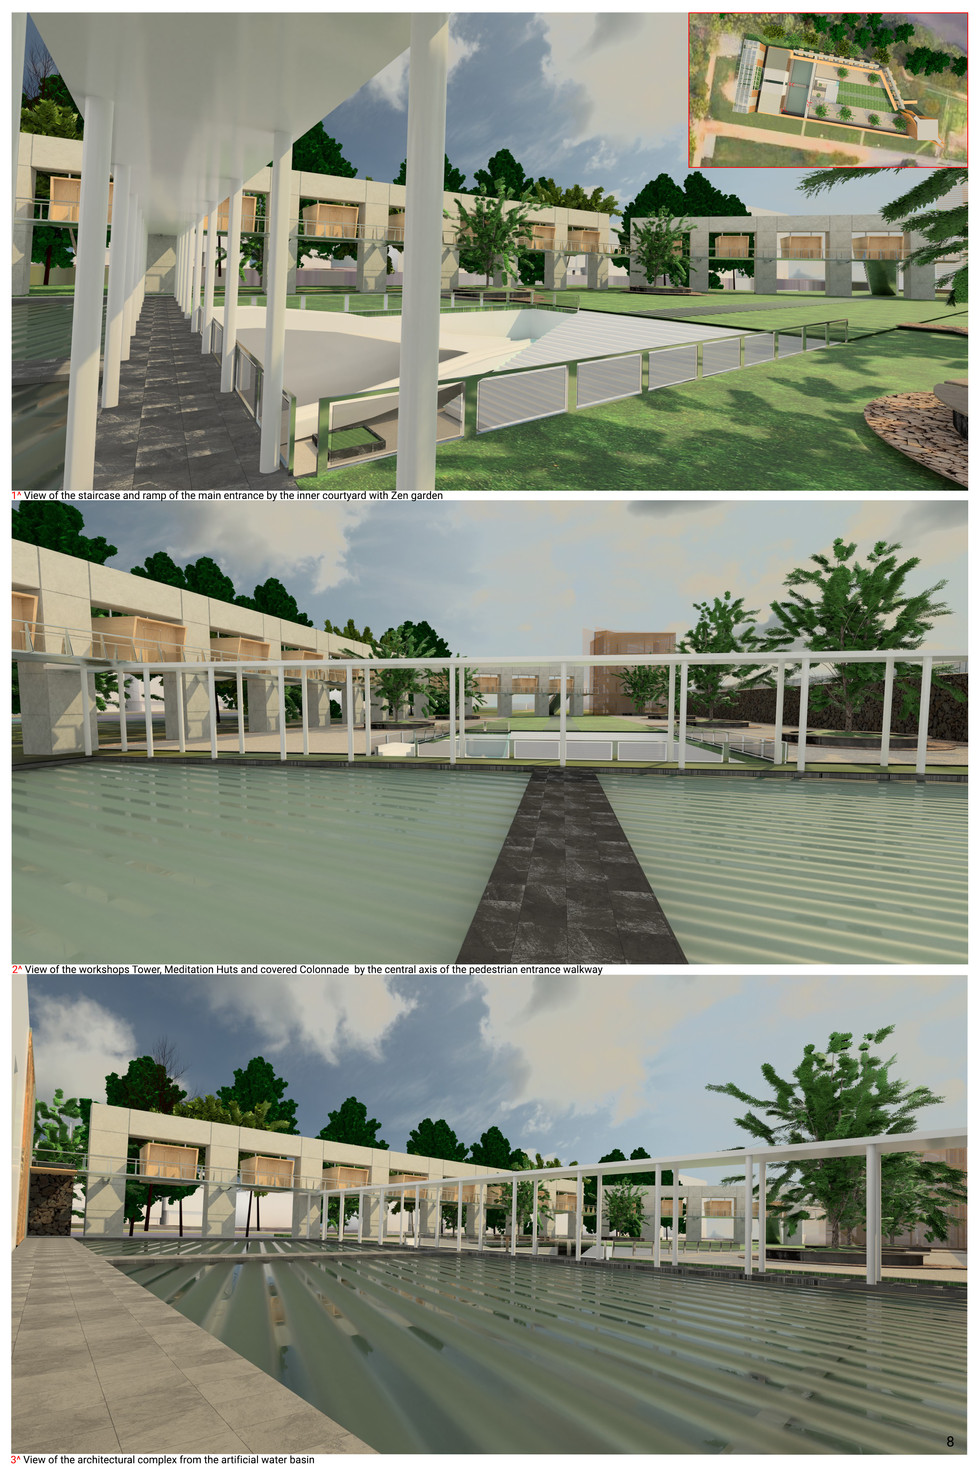 Views of the inner courtyard / water pond